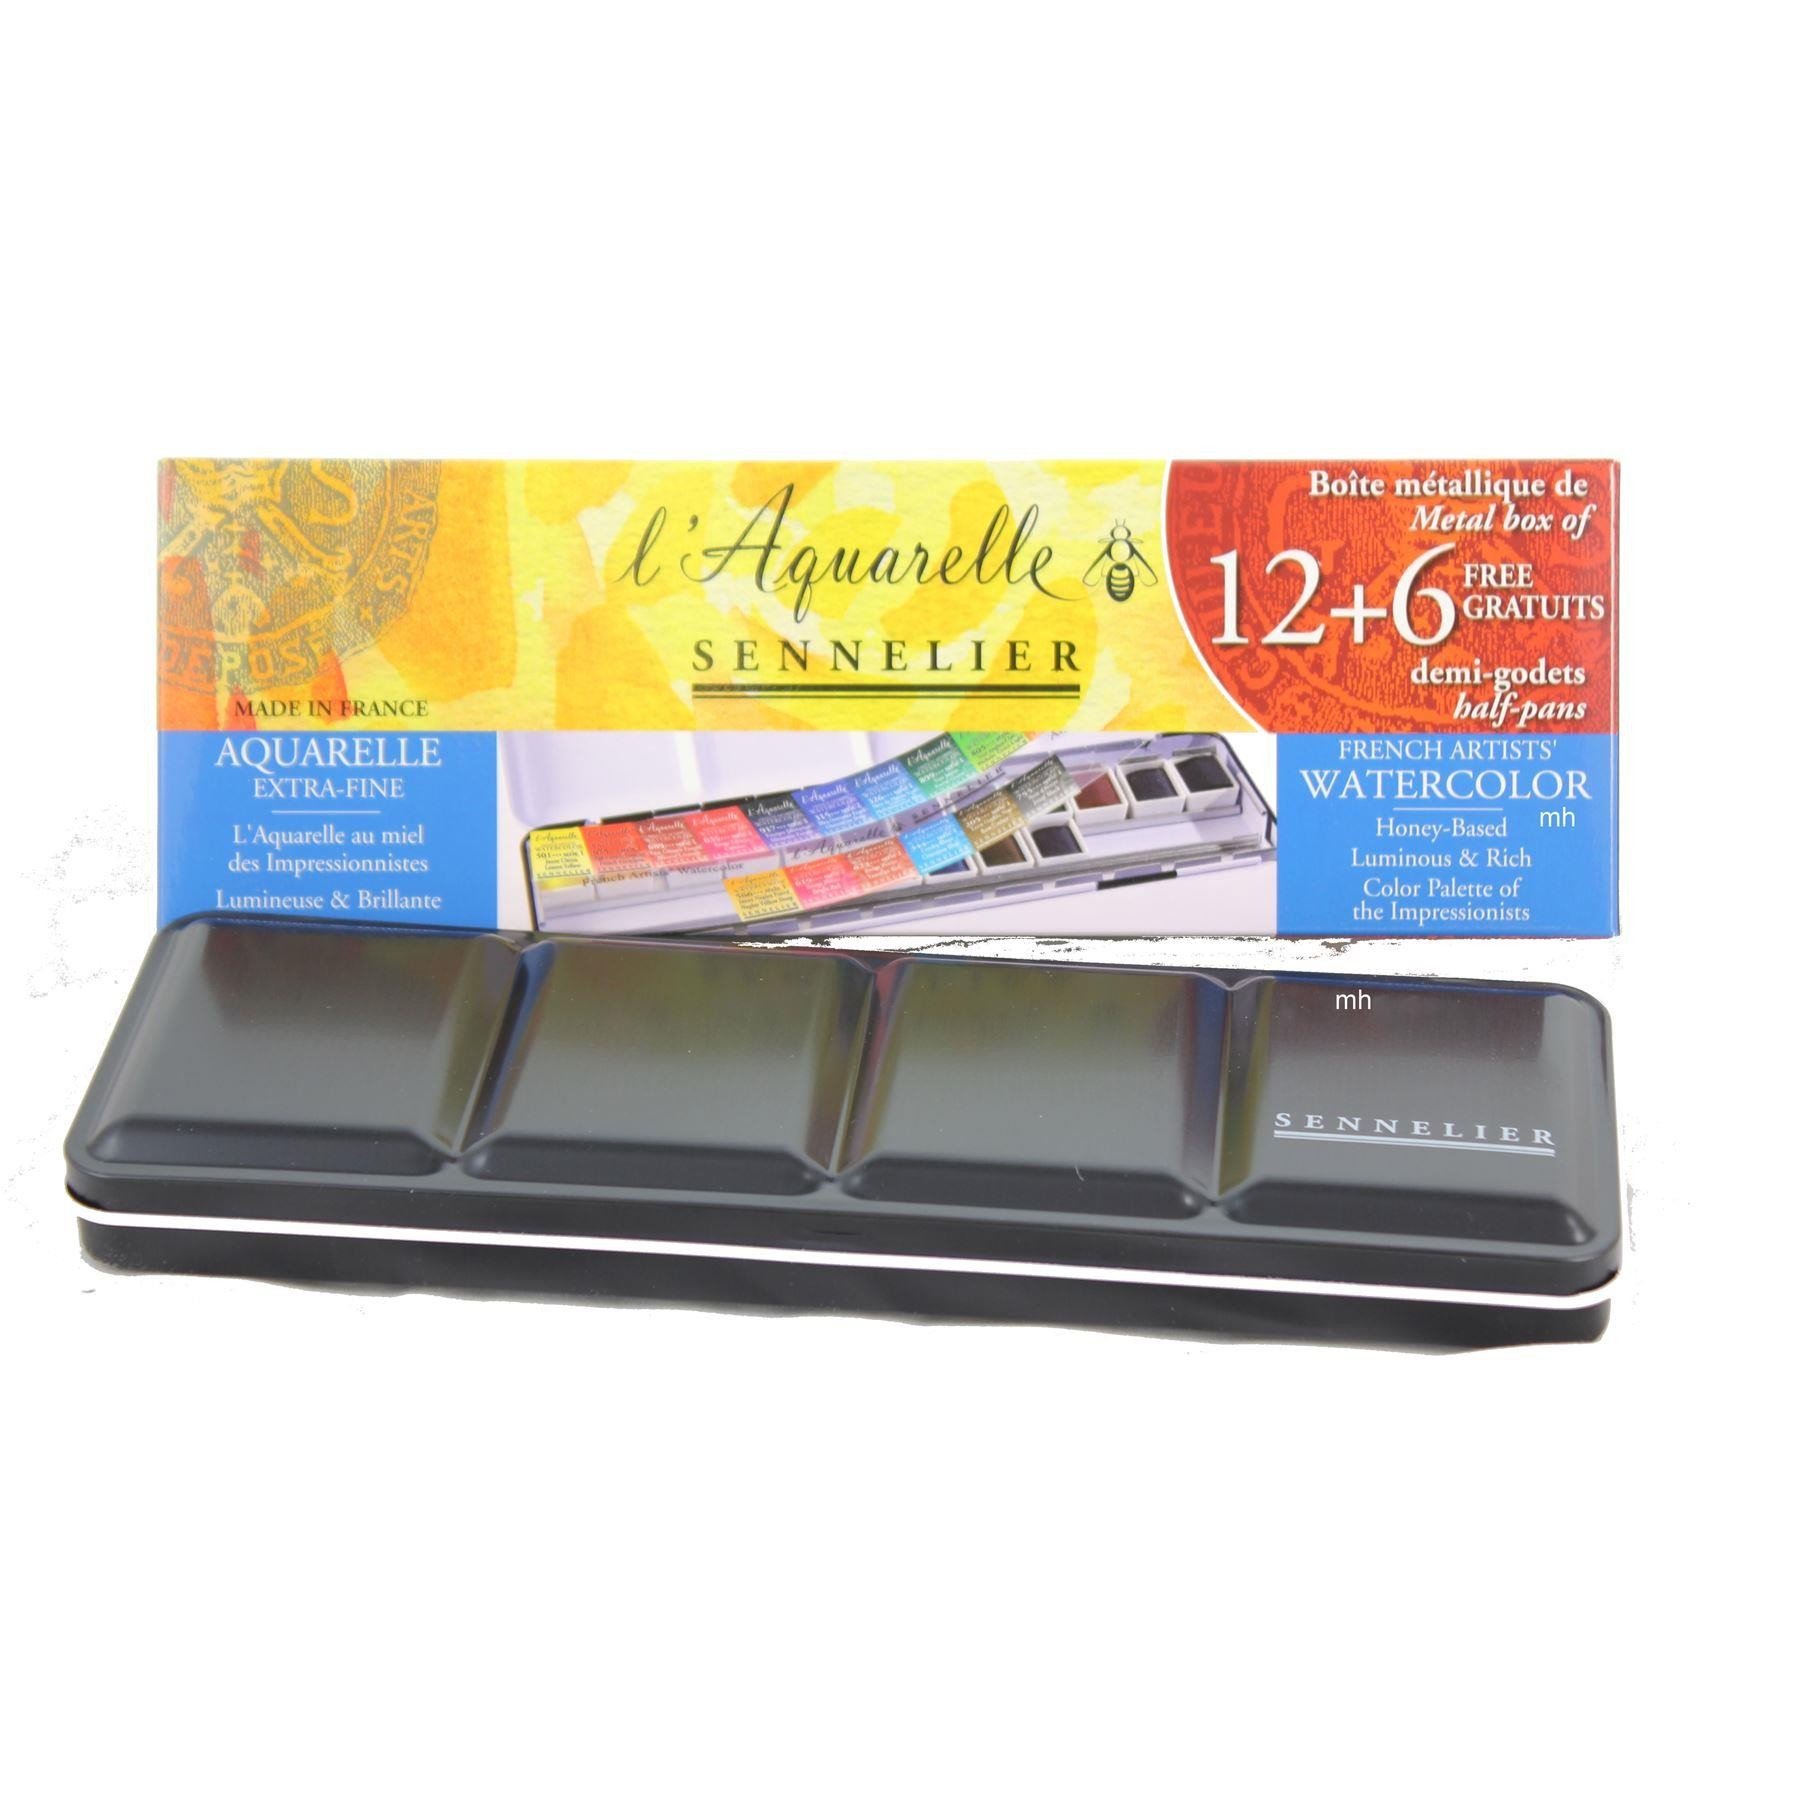 Sennelier watercolour pan set, 12 +6 1/2 pan in palette